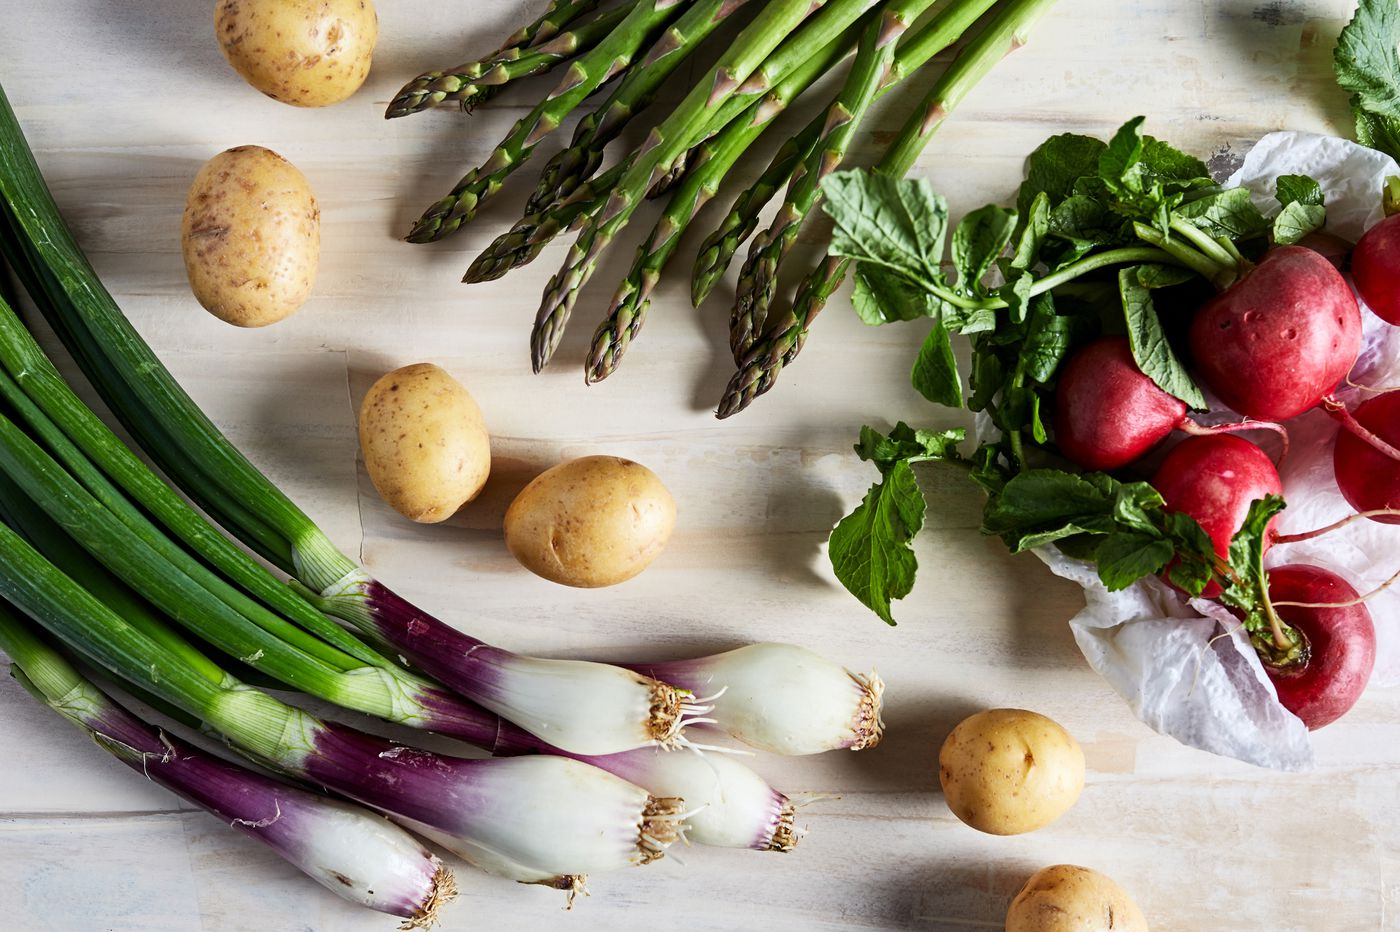 Spring is here. Embrace it with these tips for 5 of the season's produce stars